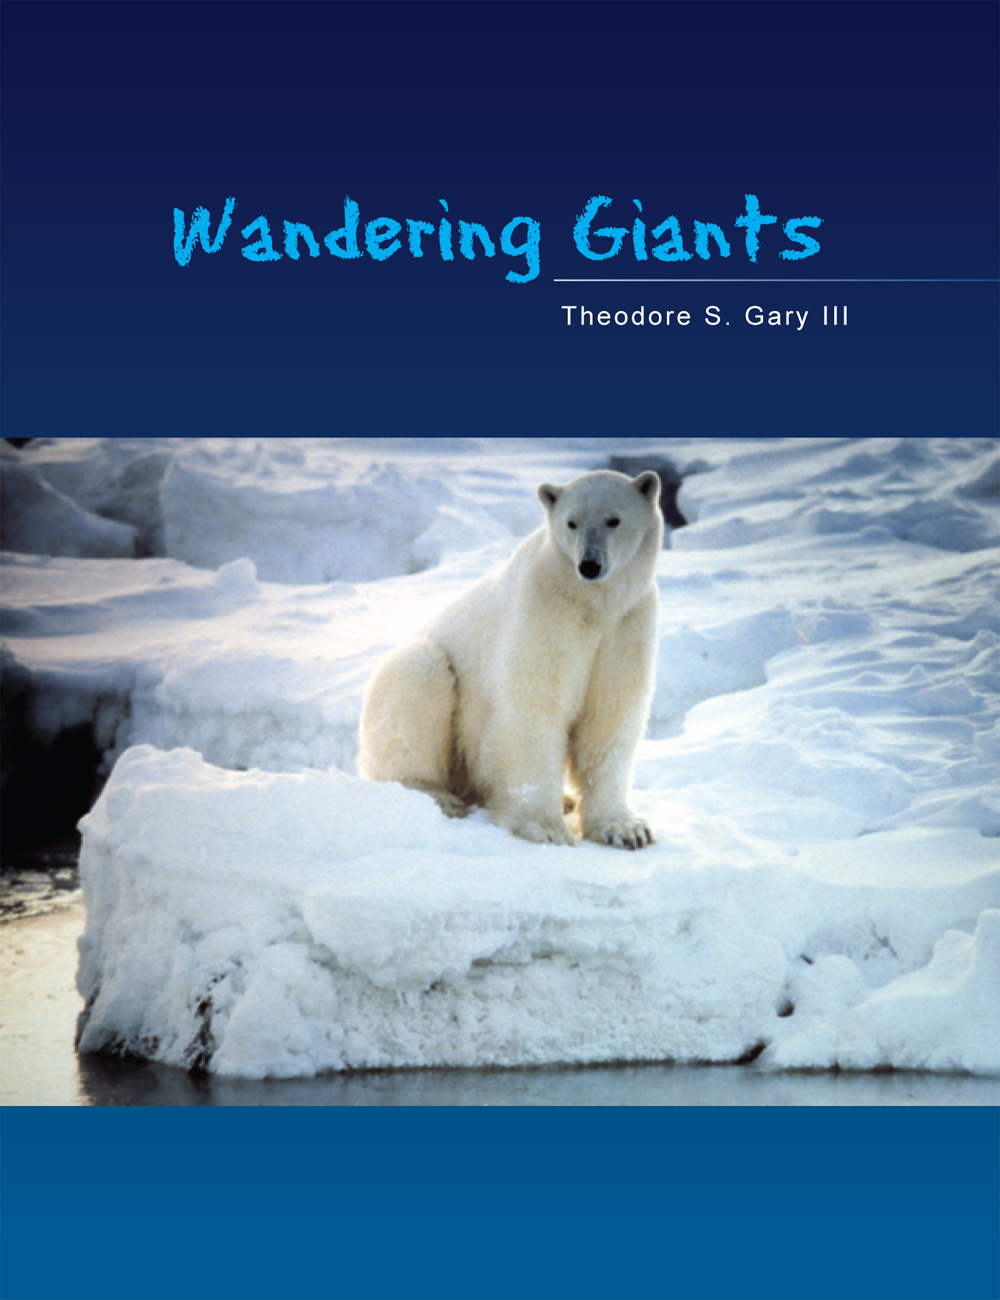 Wandering Giants